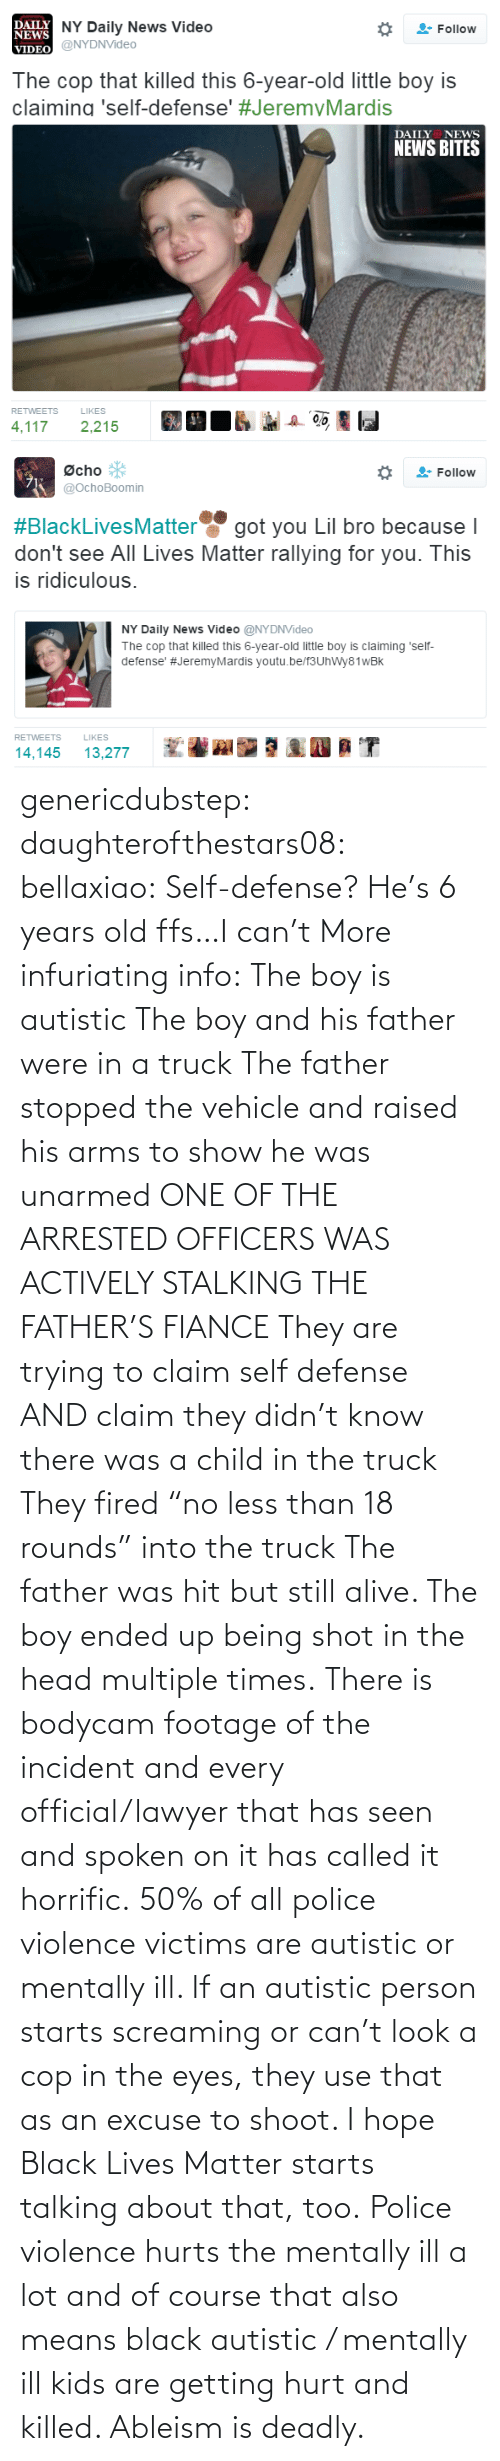 "fired: genericdubstep: daughterofthestars08:  bellaxiao:  Self-defense? He's 6 years old ffs…I can't  More infuriating info: The boy is autistic The boy and his father were in a truck The father stopped the vehicle and raised his arms to show he was unarmed ONE OF THE ARRESTED OFFICERS WAS ACTIVELY STALKING THE FATHER'S FIANCE They are trying to claim self defense AND claim they didn't know there was a child in the truck They fired ""no less than 18 rounds"" into the truck The father was hit but still alive. The boy ended up being shot in the head multiple times. There is bodycam footage of the incident and every official/lawyer that has seen and spoken on it has called it horrific.  50% of all police violence victims are autistic or mentally ill. If an autistic person starts screaming or can't look a cop in the eyes, they use that as an excuse to shoot. I hope Black Lives Matter starts talking about that, too. Police violence hurts the mentally ill a lot and of course that also means black autistic / mentally ill kids are getting hurt and killed. Ableism is deadly."